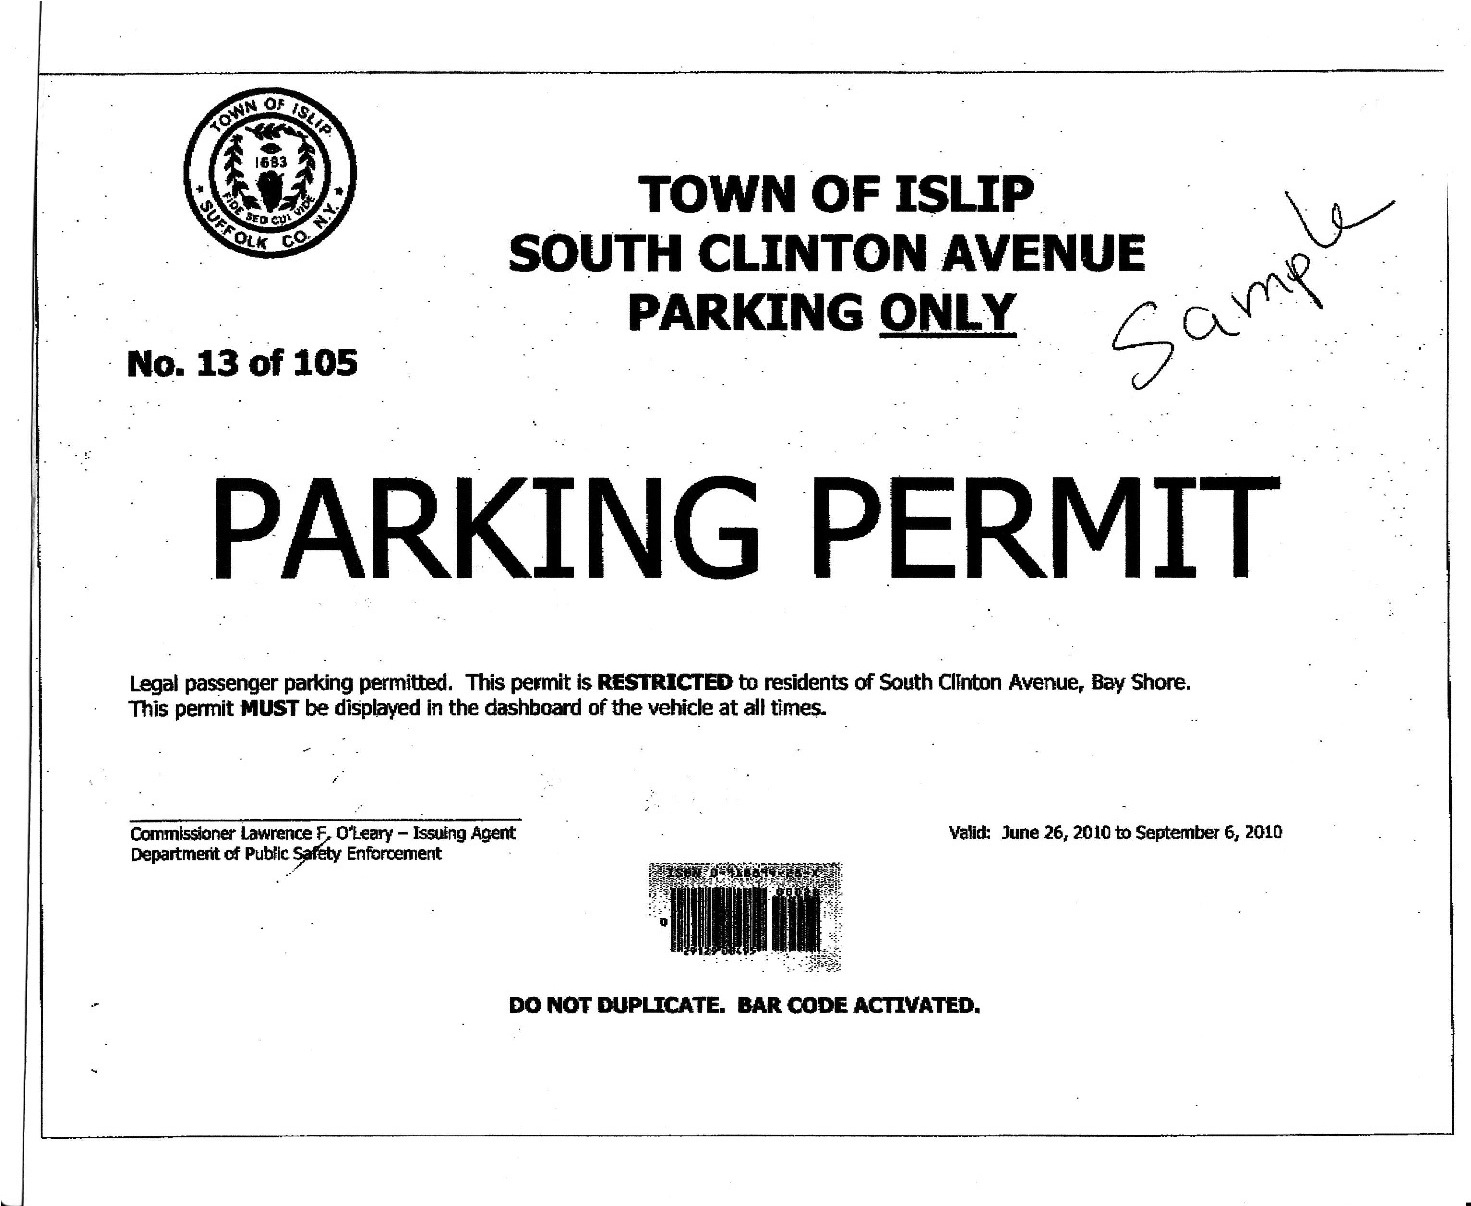 Stock Contractor Parking Permit Hang Tag, SKU - PP-2009-SEQ